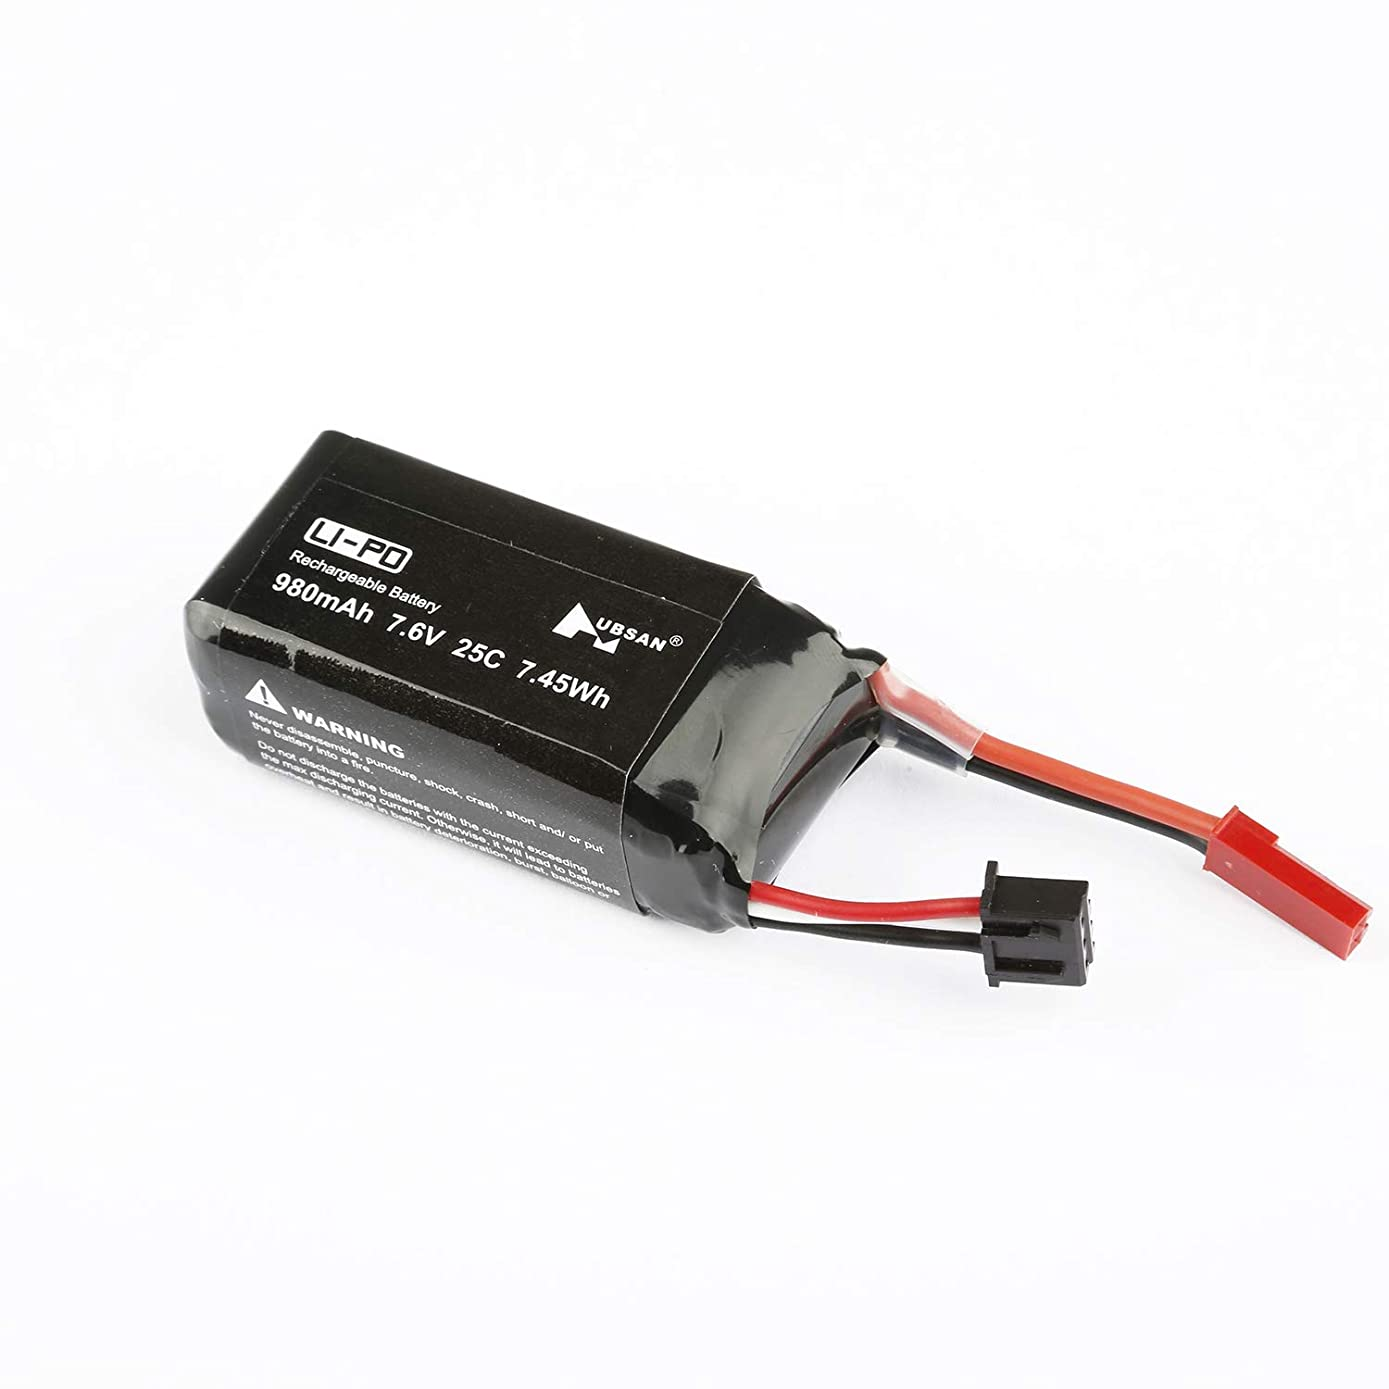 Hubsan H123D X4 Jet Spare Battery for RC Helicopter Micro Speed Racing FPV Drone Quadcopter H123D-17